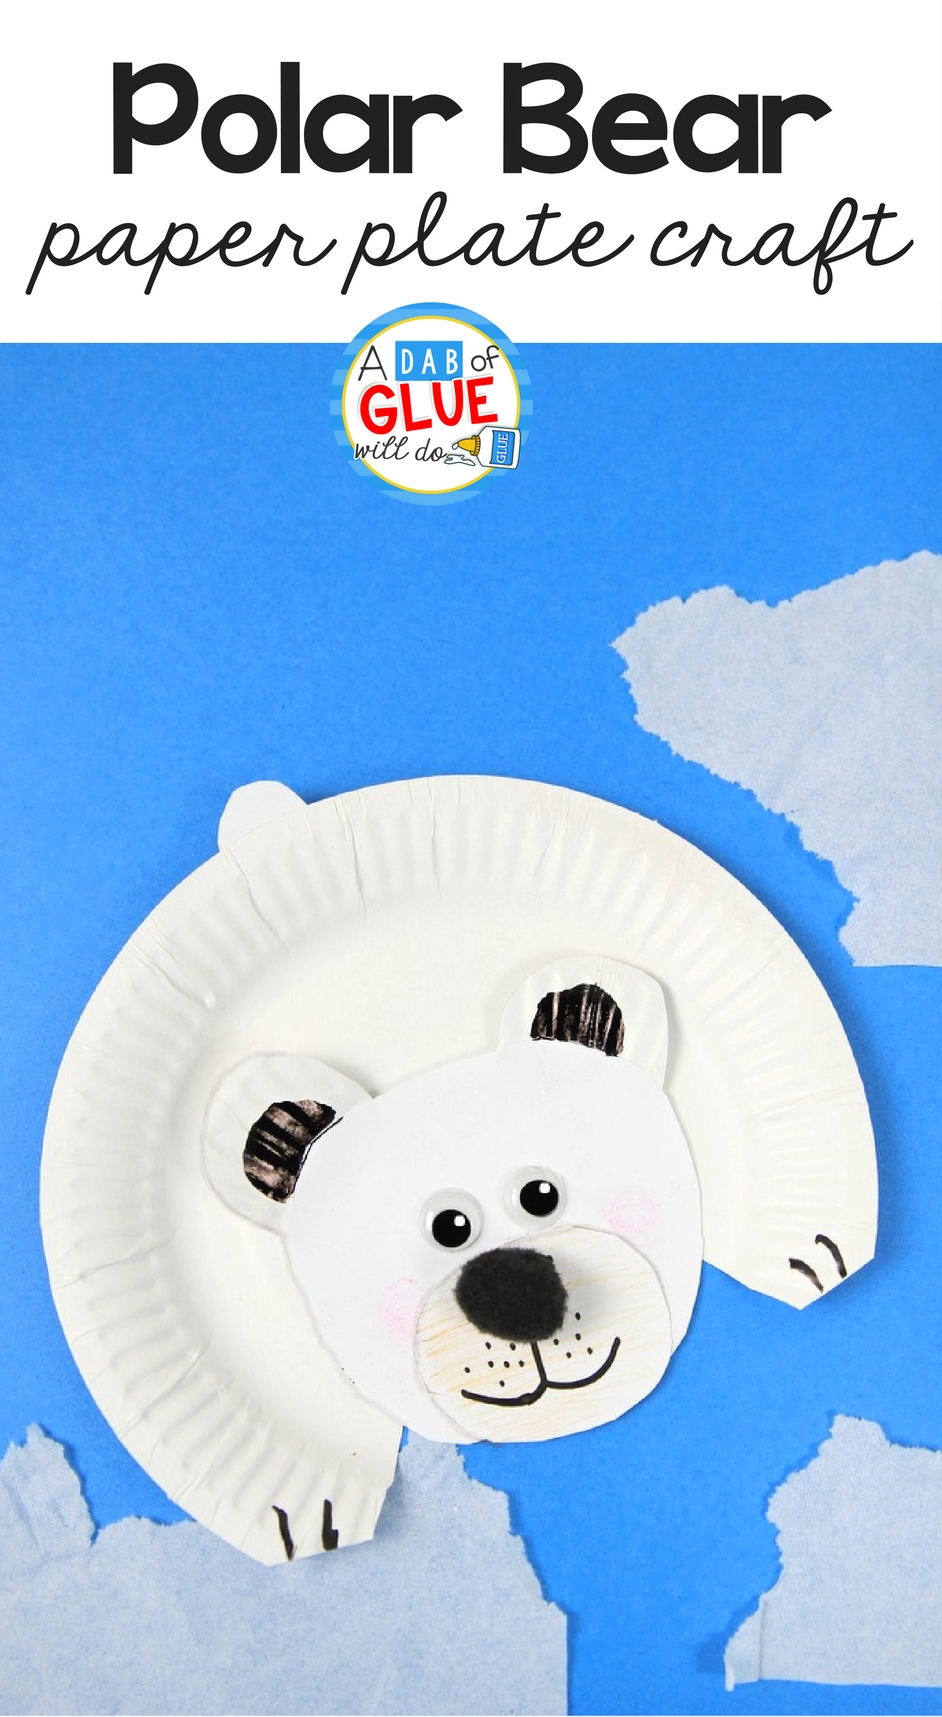 arctic animals for kids polar bear craft a dab of glue